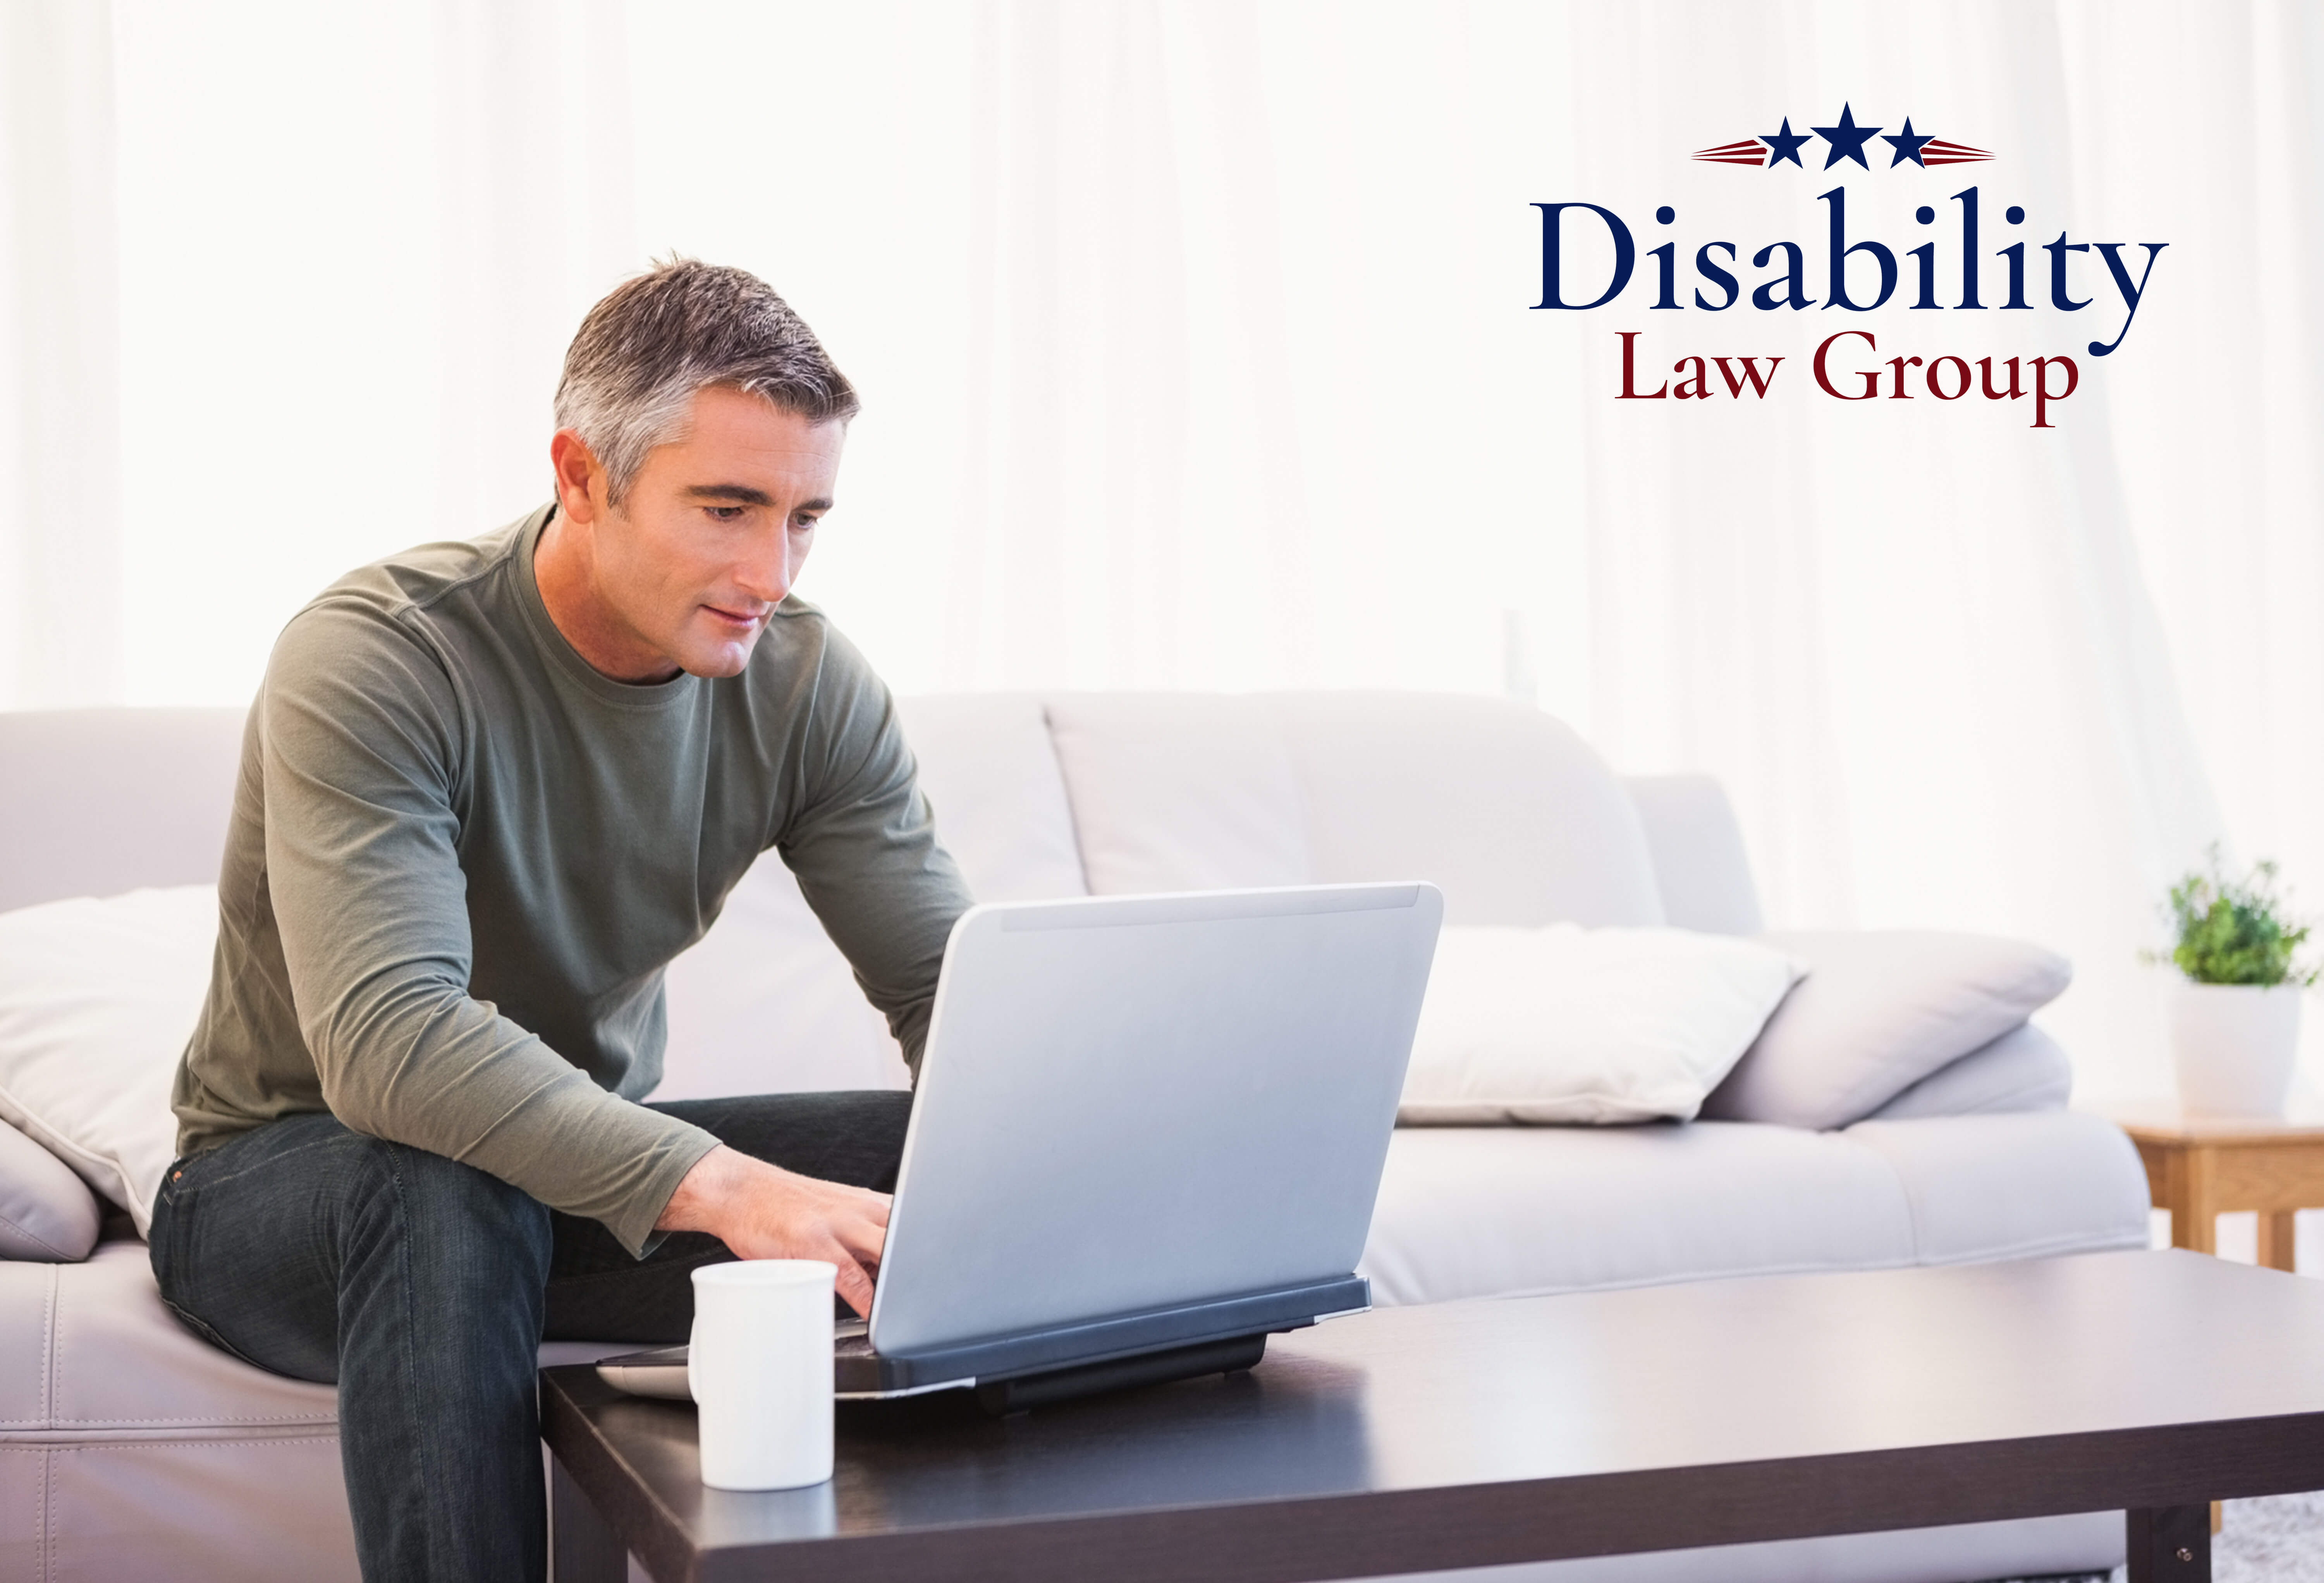 Man typing on computer in living room disability law group logo